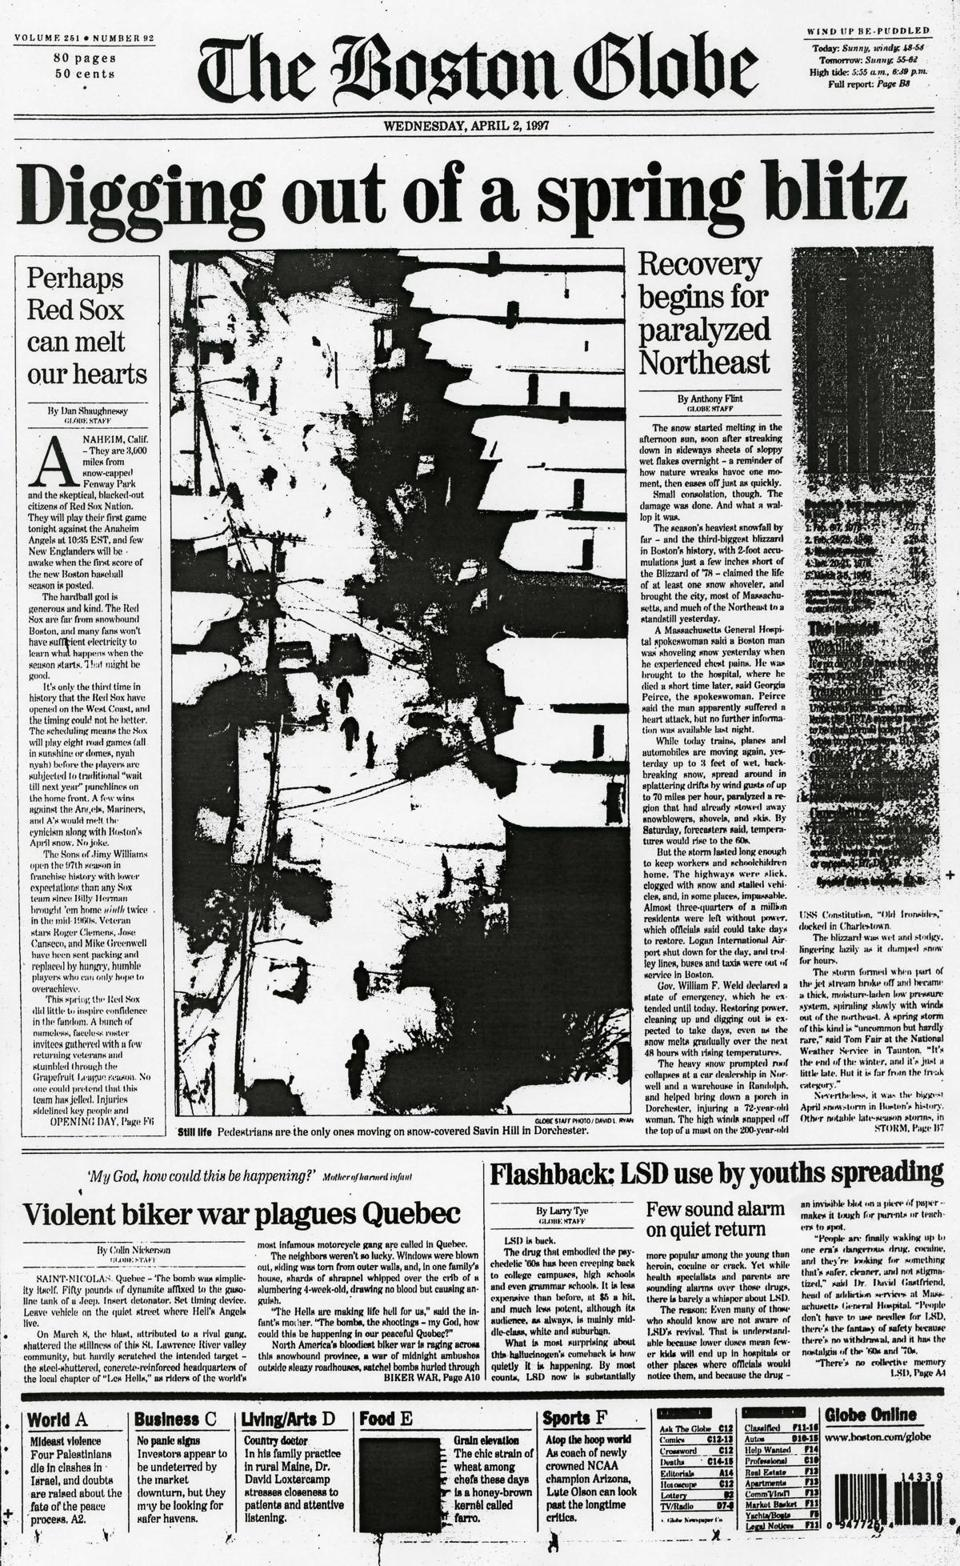 The front page on April 2.